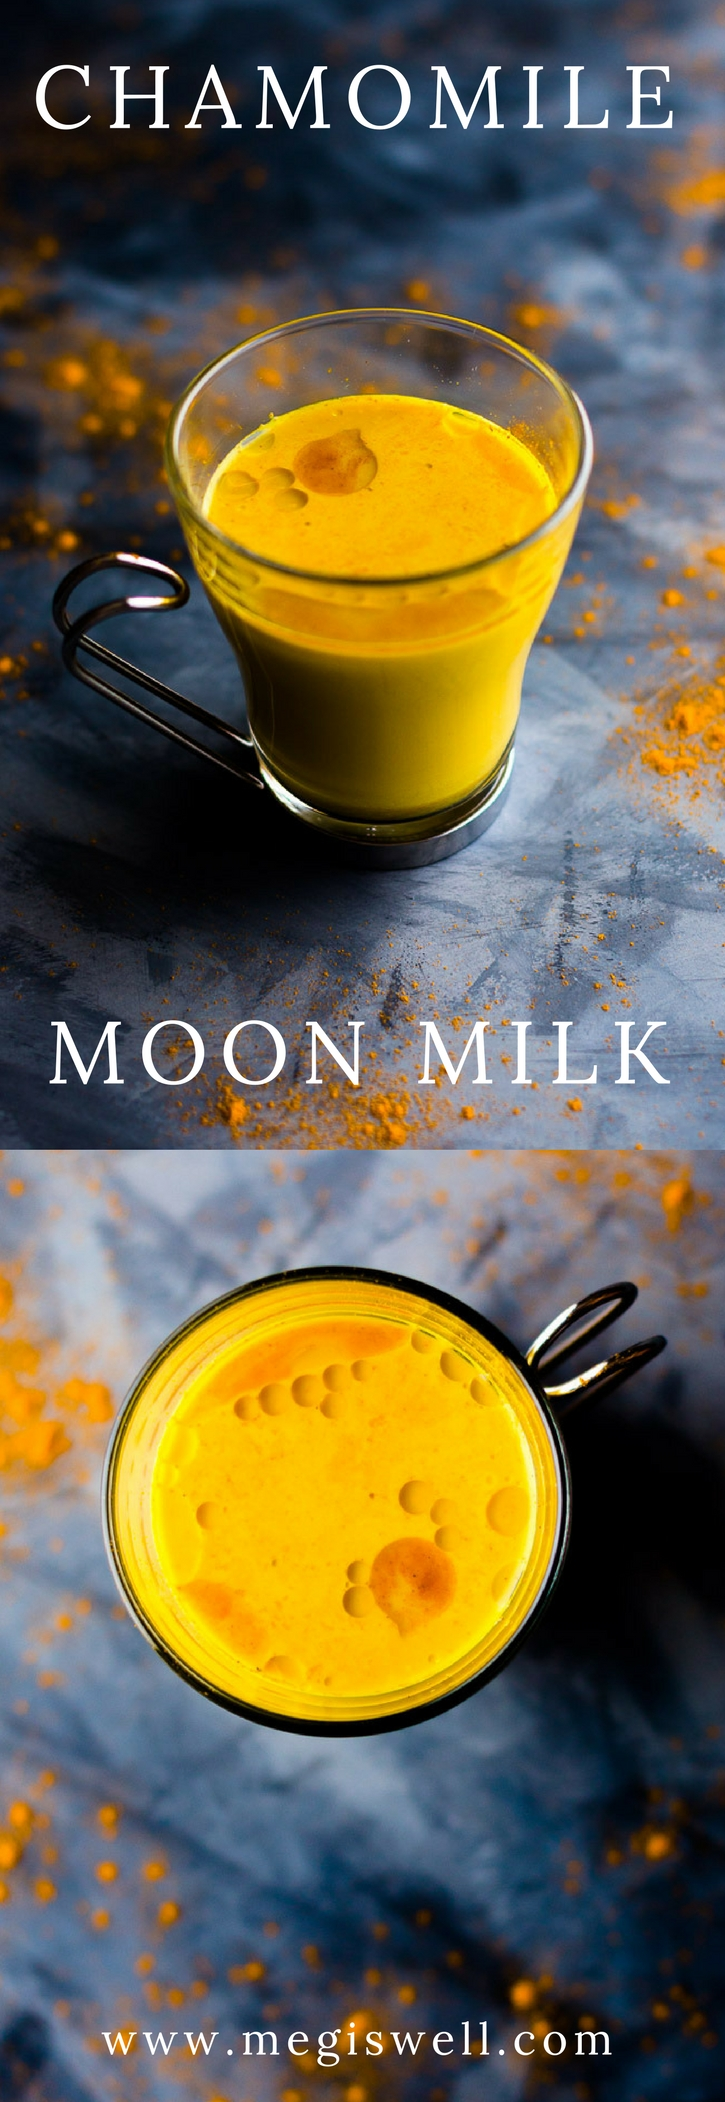 This Chamomile Moon Milk is a warm spice and herbal nighttime beverage to help relieve sleeplessness and stress. | Sleep Remedy | Stress Reliever | Soothing | www.megiswell.com